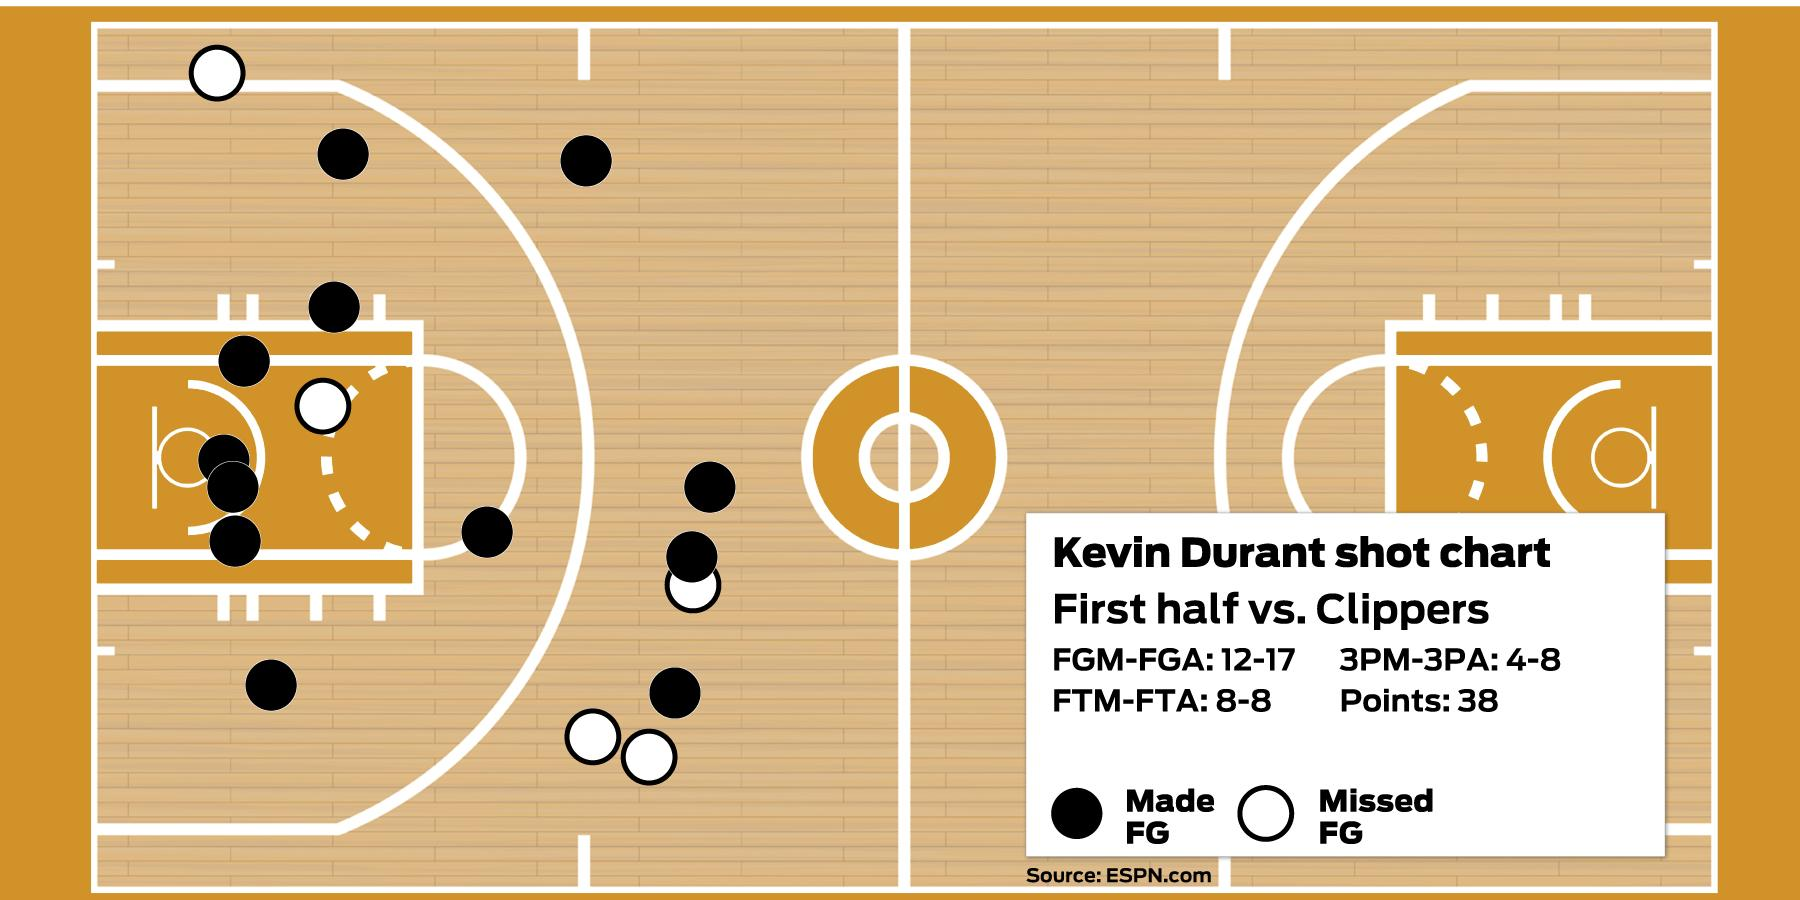 Warriors' Kevin Durant ties Charles Barkley with historic, 38-point